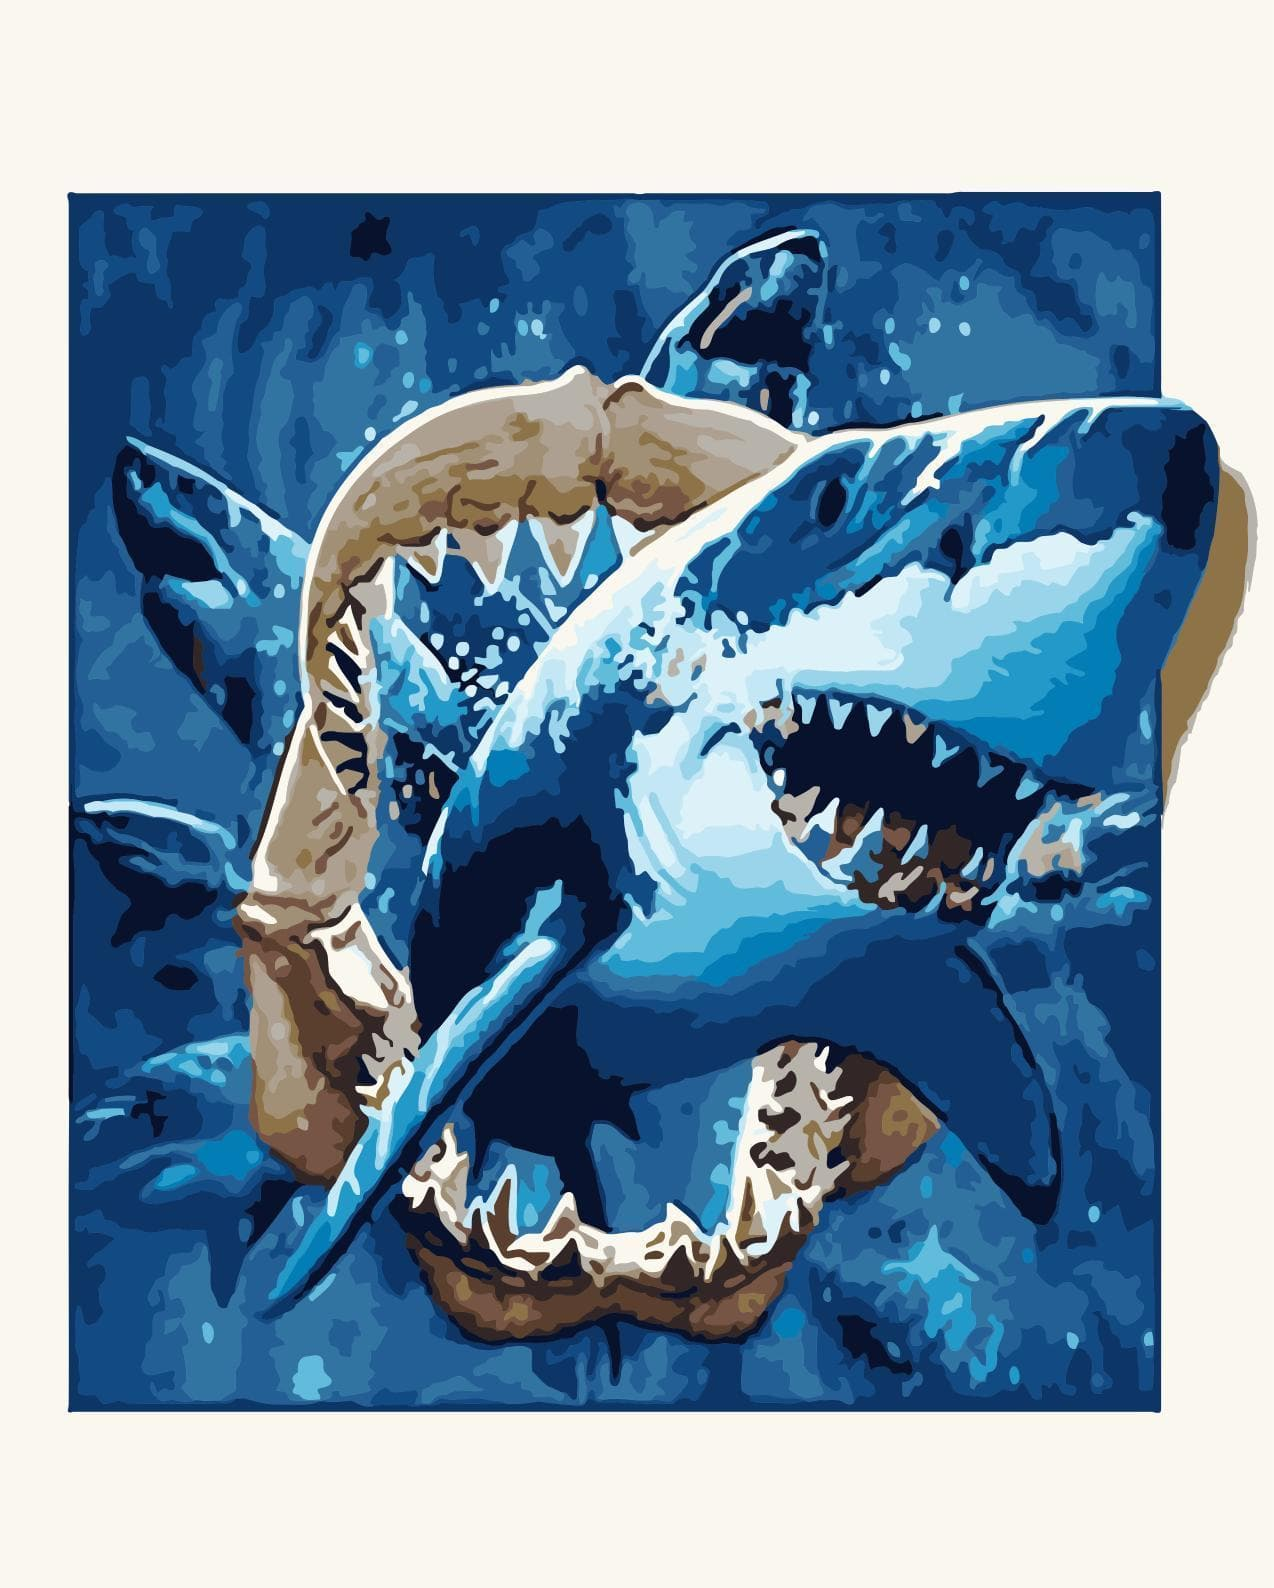 Shark Diy Paint By Numbers Kits WM-485 - NEEDLEWORK KITS